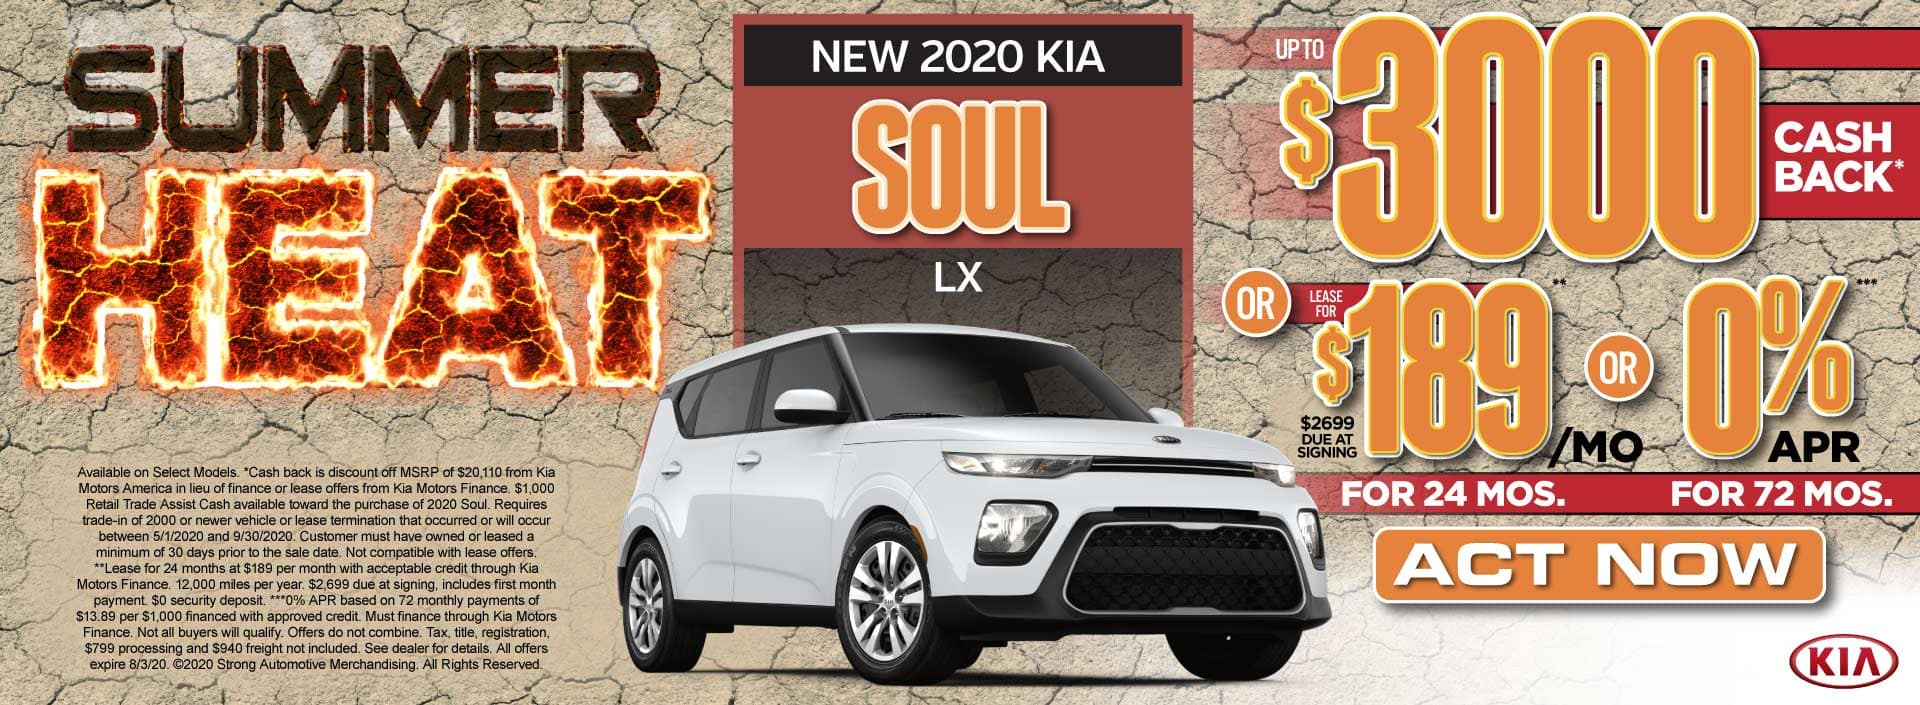 New 2020 Kia Soul up to $3000 Cash Back or $189/mo - Act Now